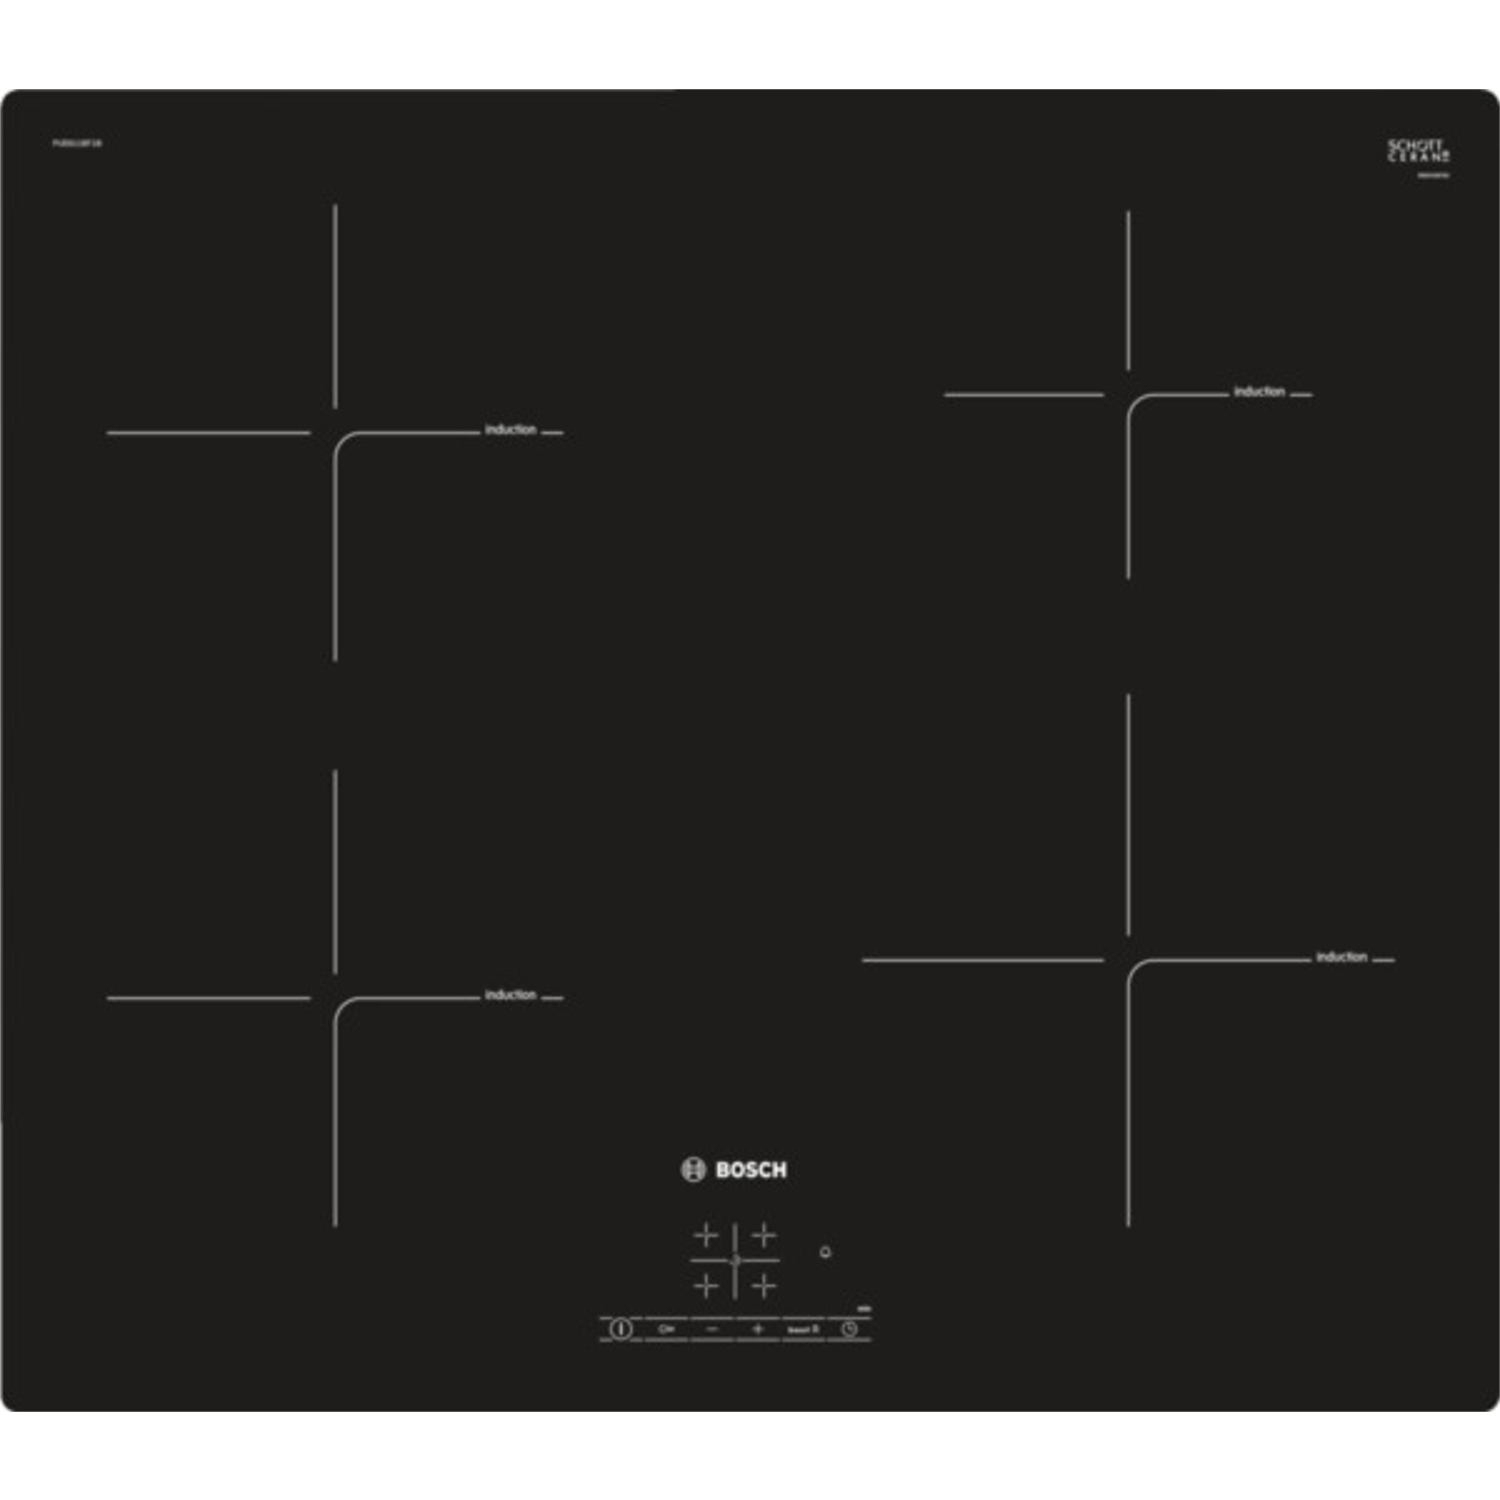 Bosch PUE611BF1B 60cm Induction Hob - Black - 0